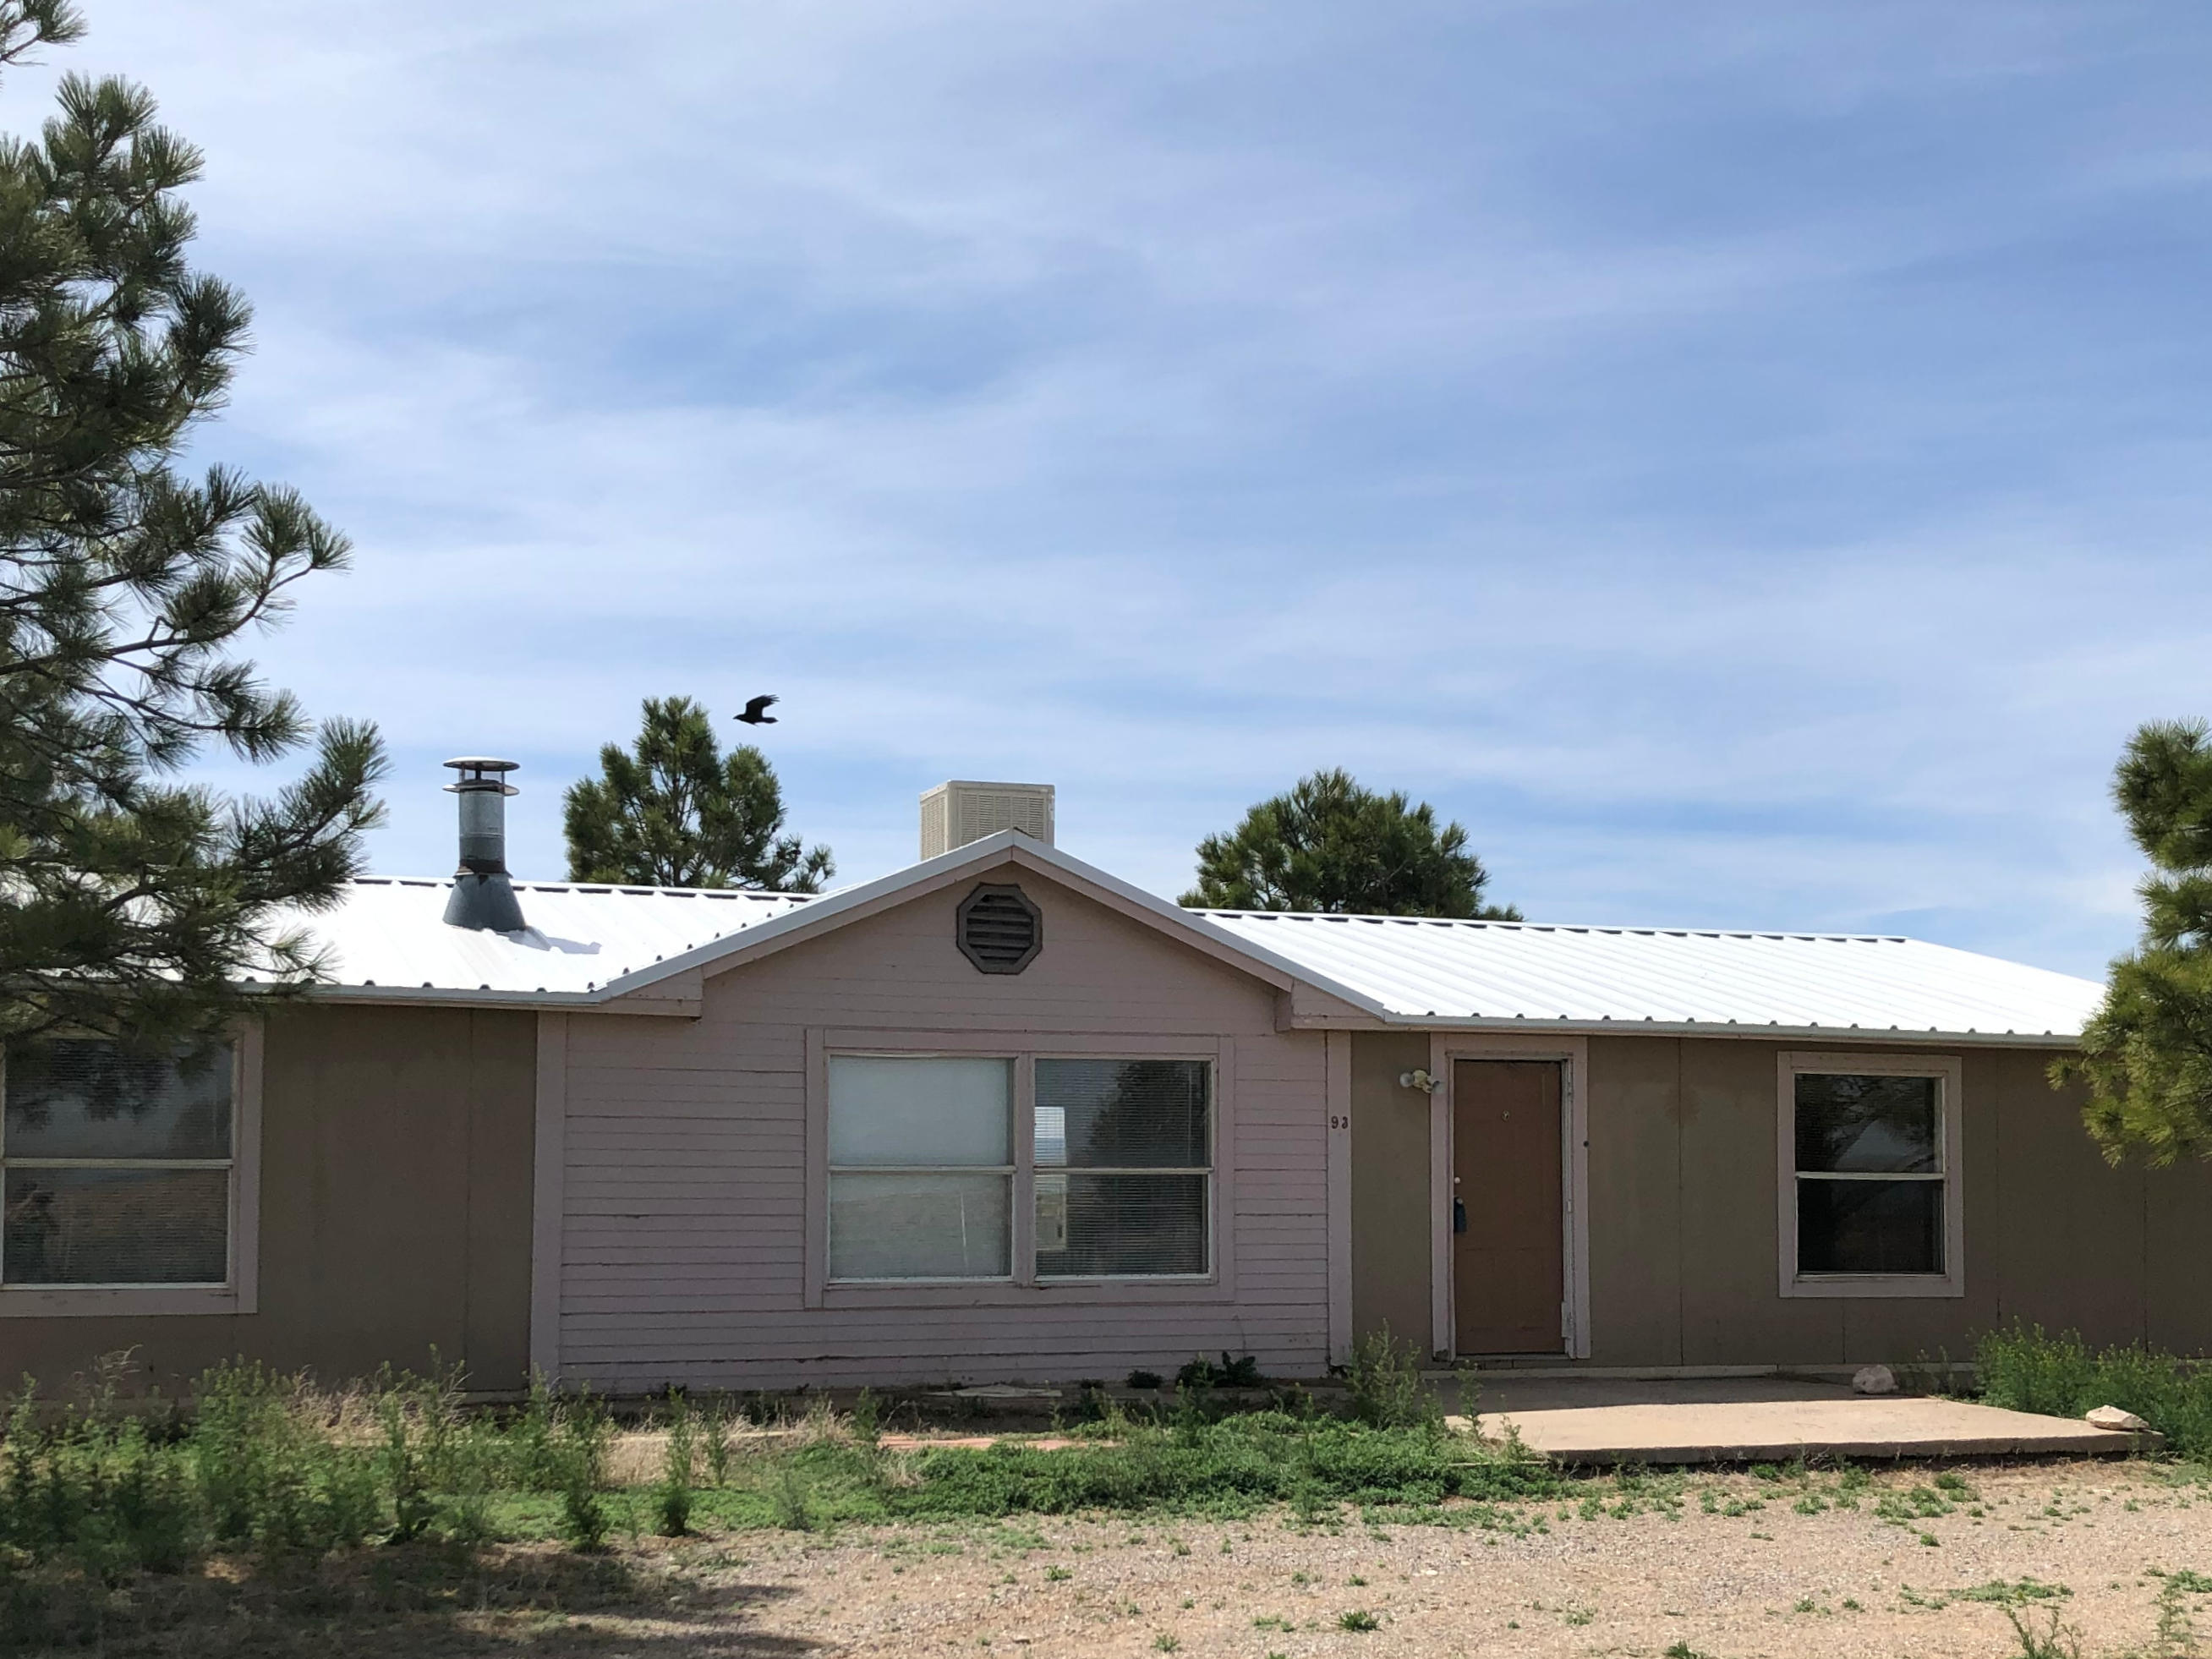 This manufactured home on 10 acres located in Santa Fe County, New Mexico offers mountain views, wide open spaces and the peace and quite of country living. The home is 3 bedrooms and 2 baths and a large family dining area. This is your easy 30-minute commute to Albuquerque or about an hour to Santa Fe.